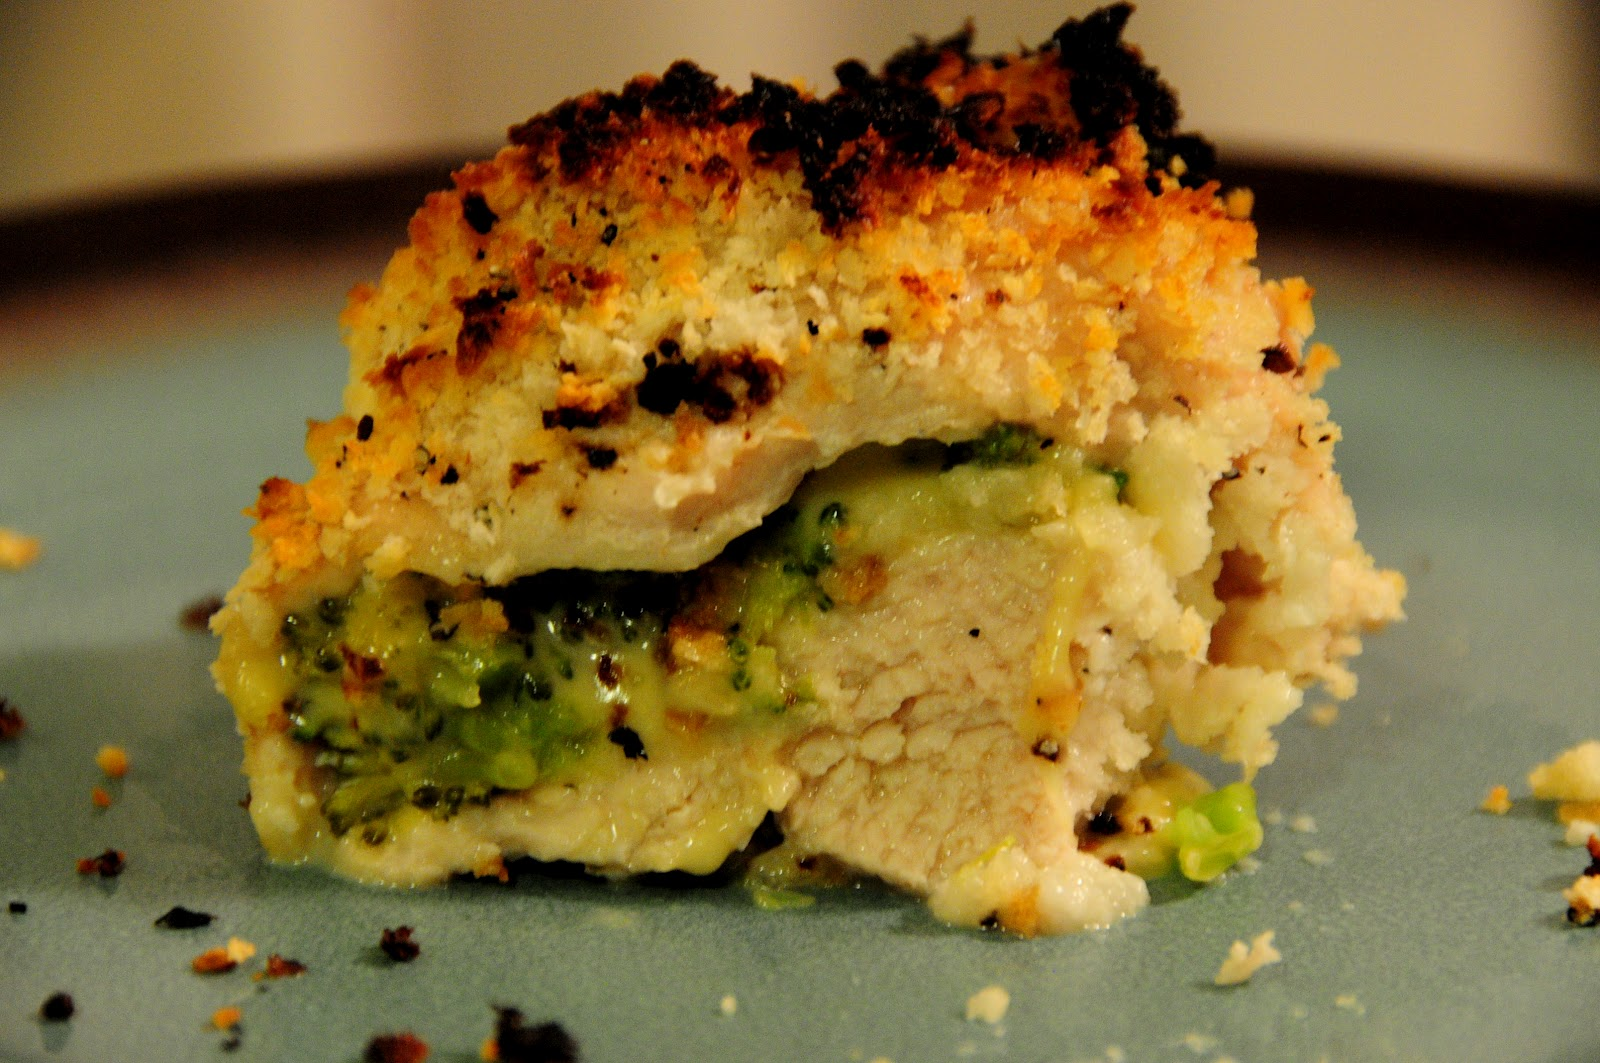 Broccoli & Cheese Stuffed Turkey Breast - total time 40 minutes ...